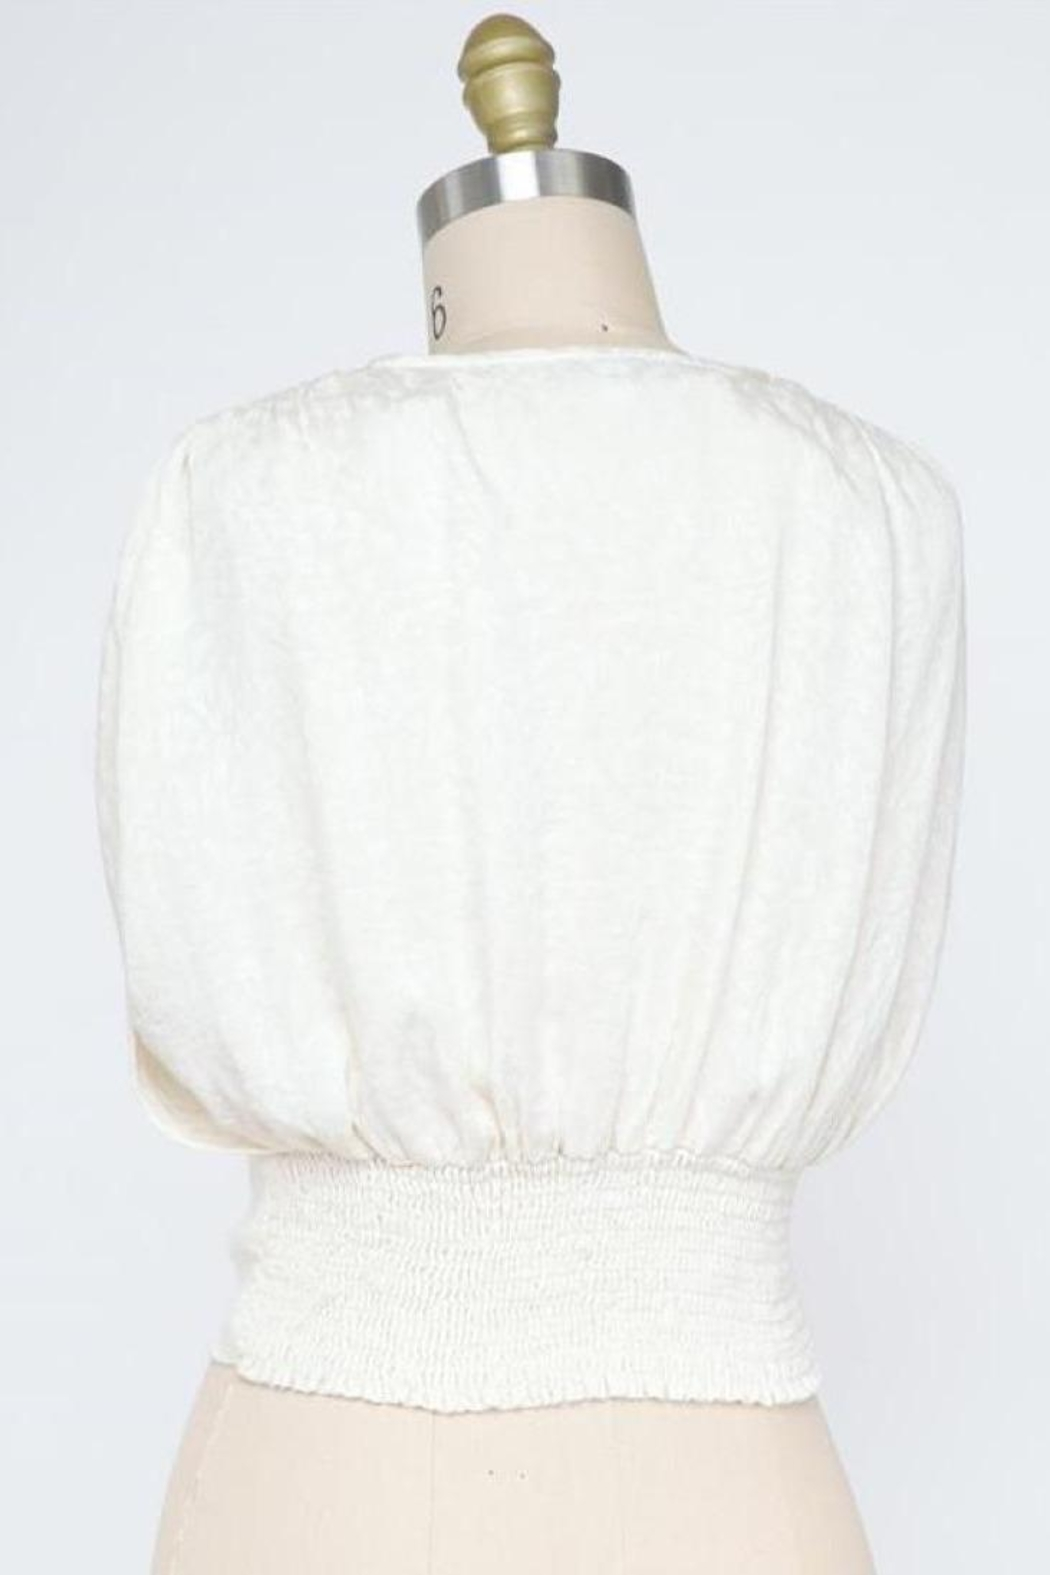 Final Touch Mademoiselle Blouse In Ivory - Front Full Image